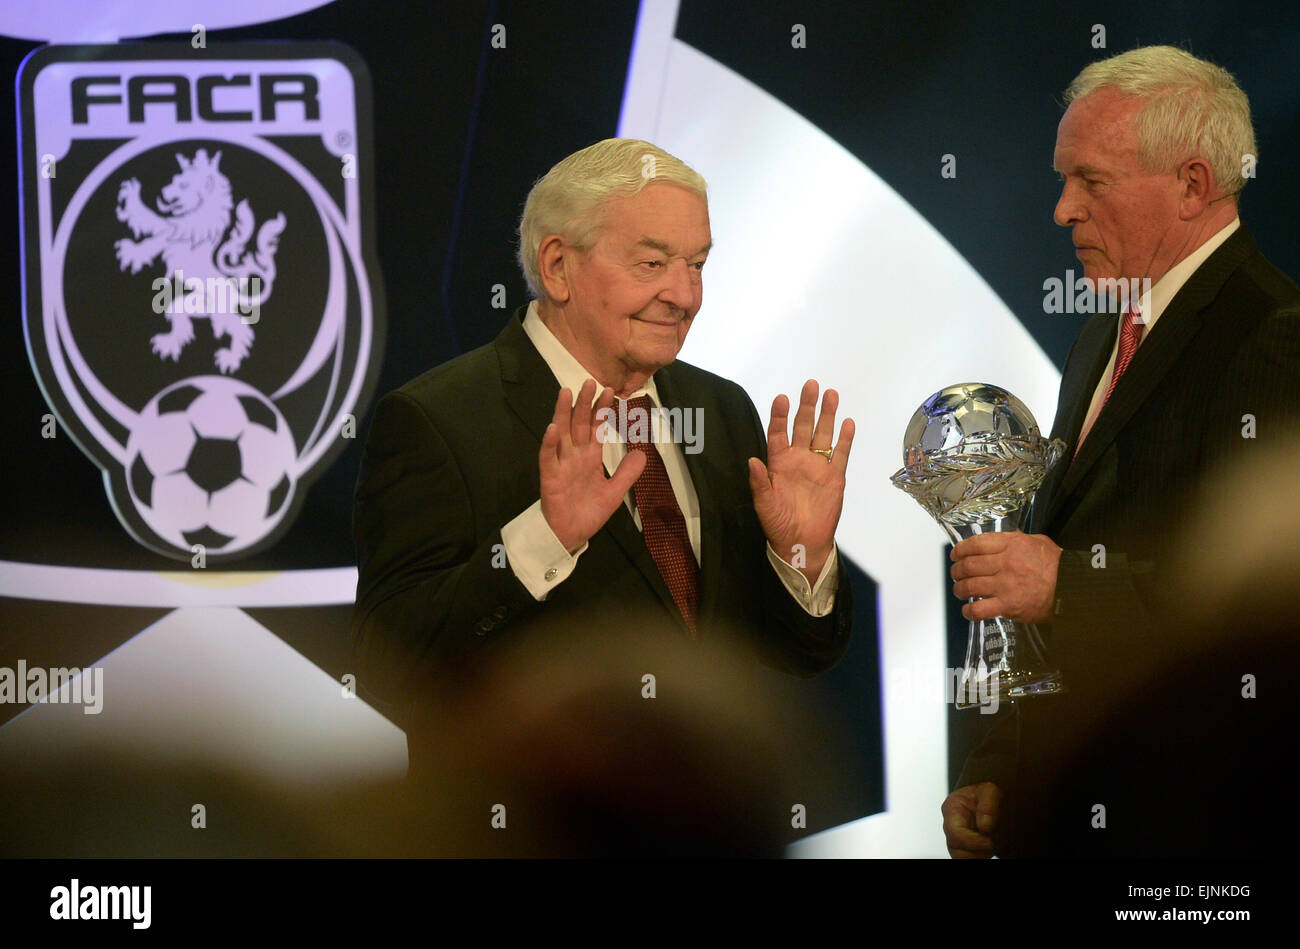 Prague, Czech Republic. 29th March, 2015. Rudolf Bata, respected football official, left, was inducted into the Stock Photo